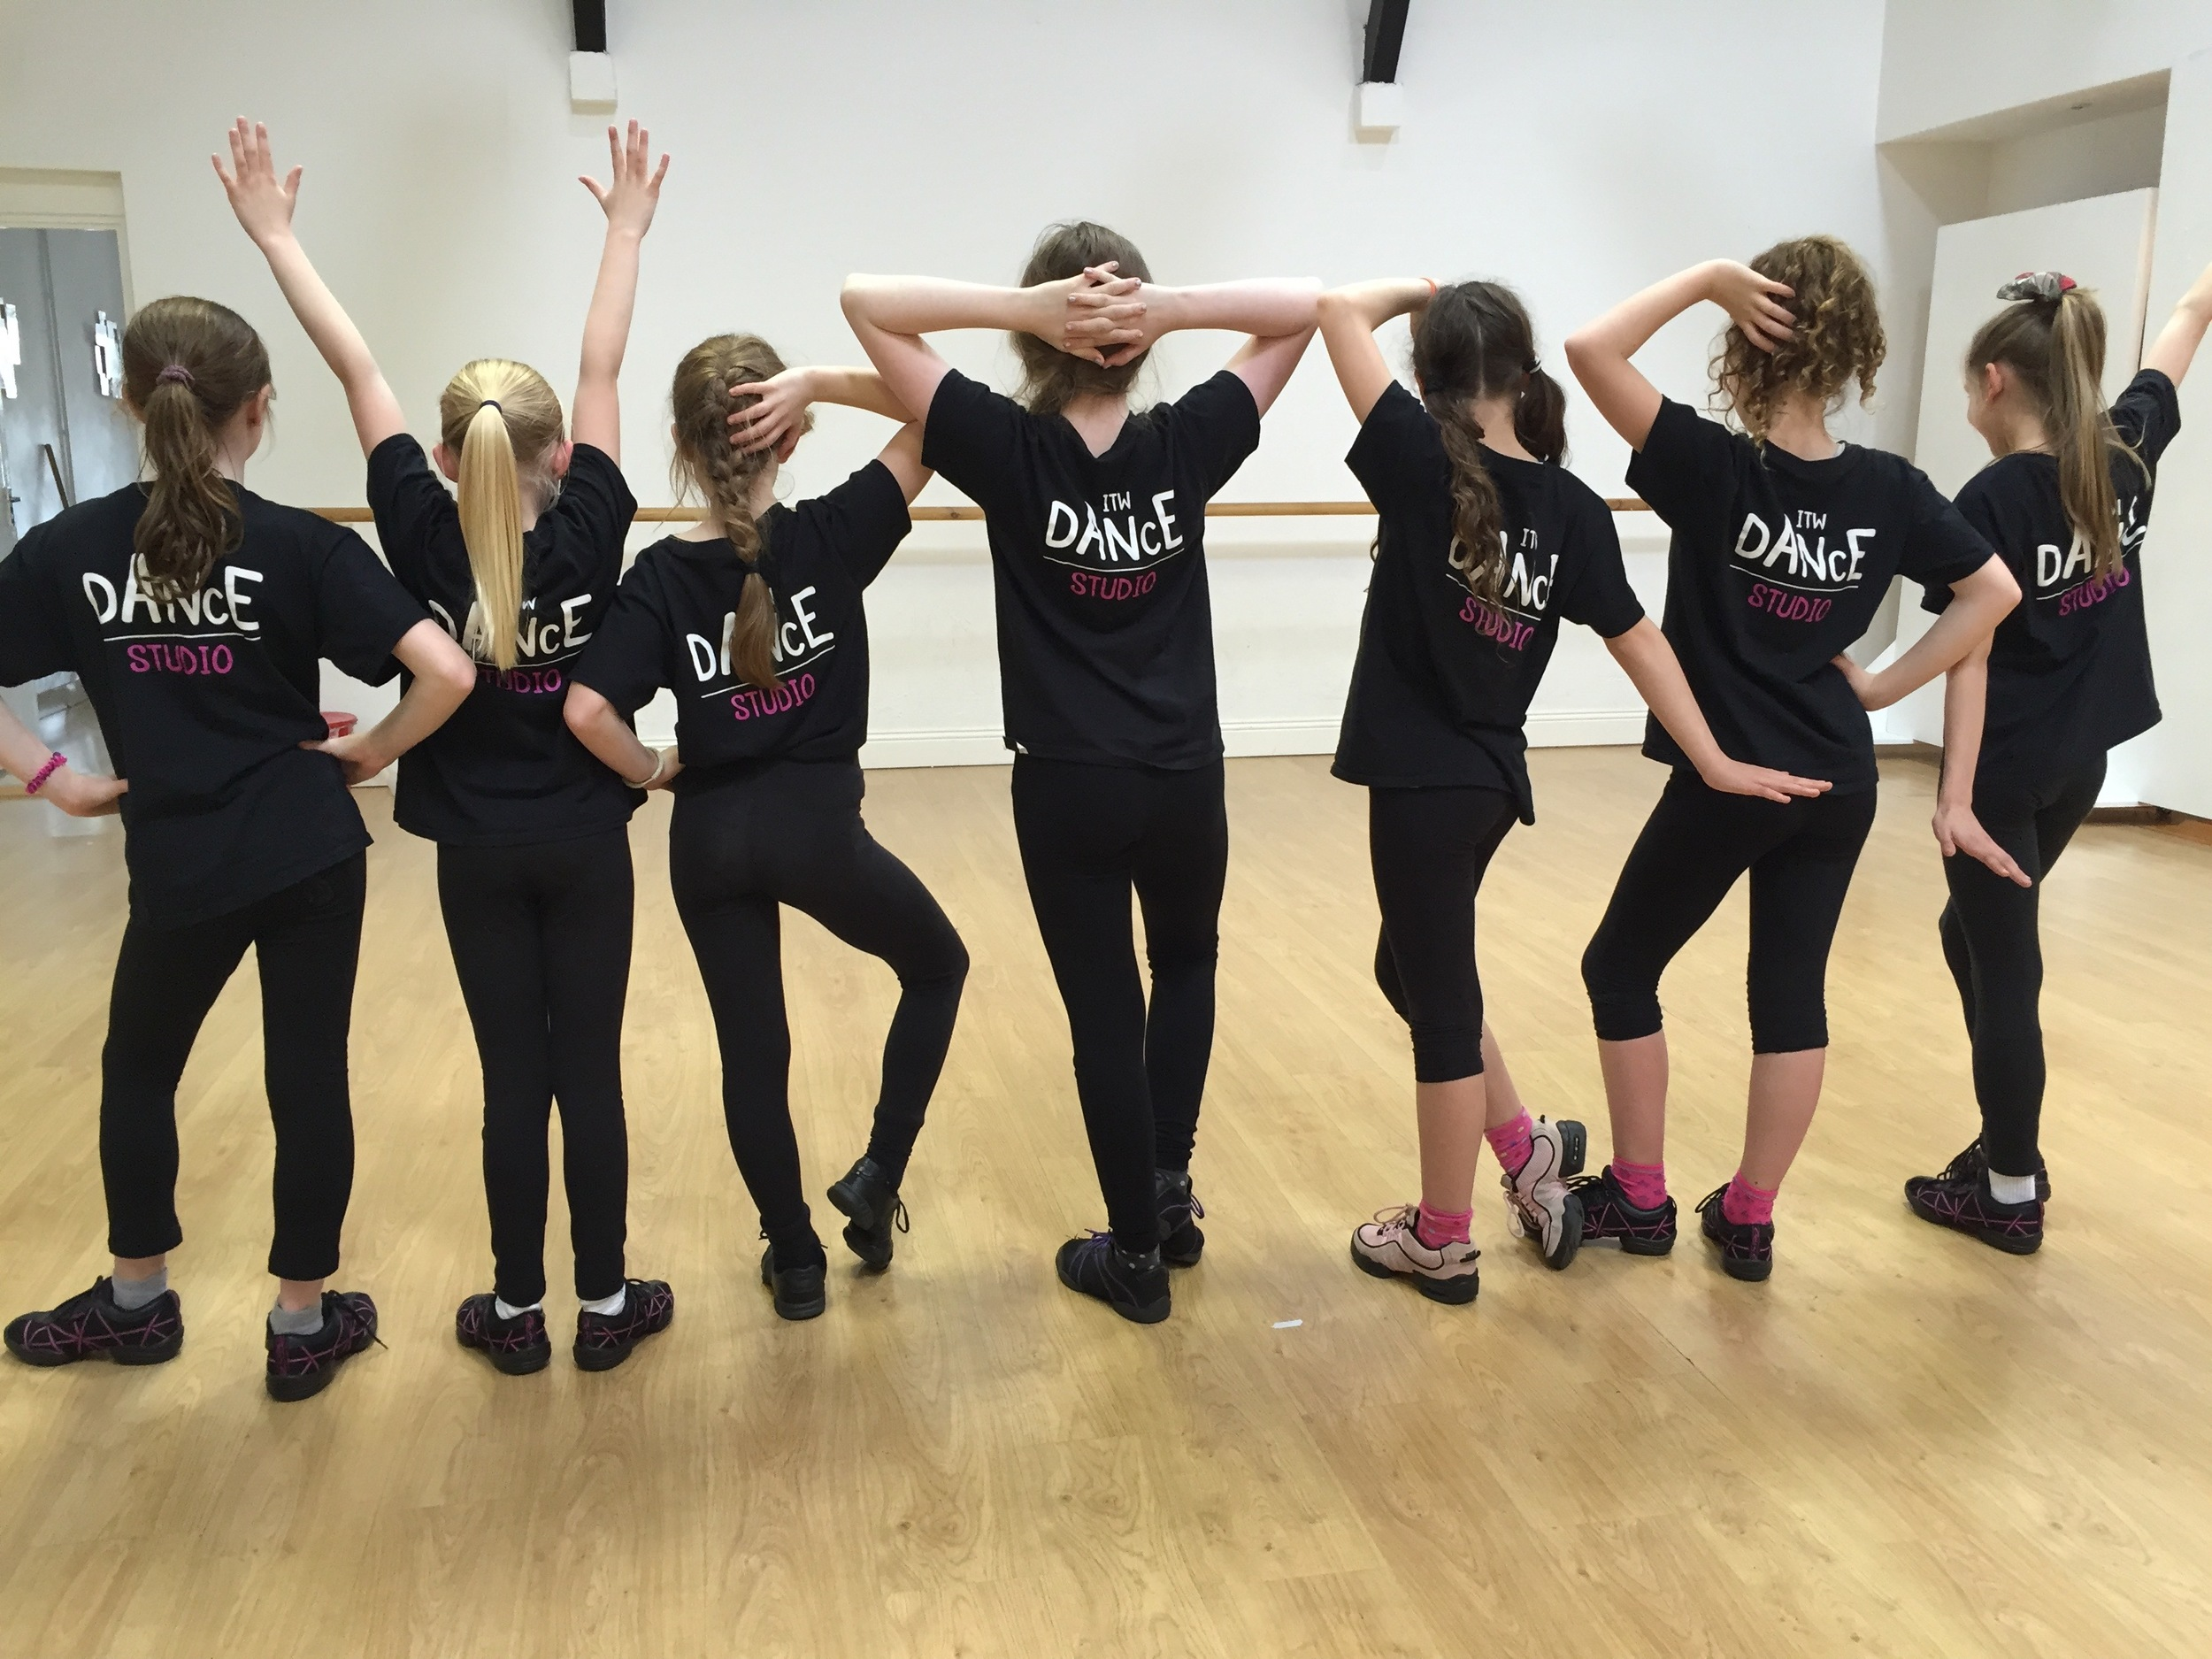 JOIN OUR DANCE COMPANY